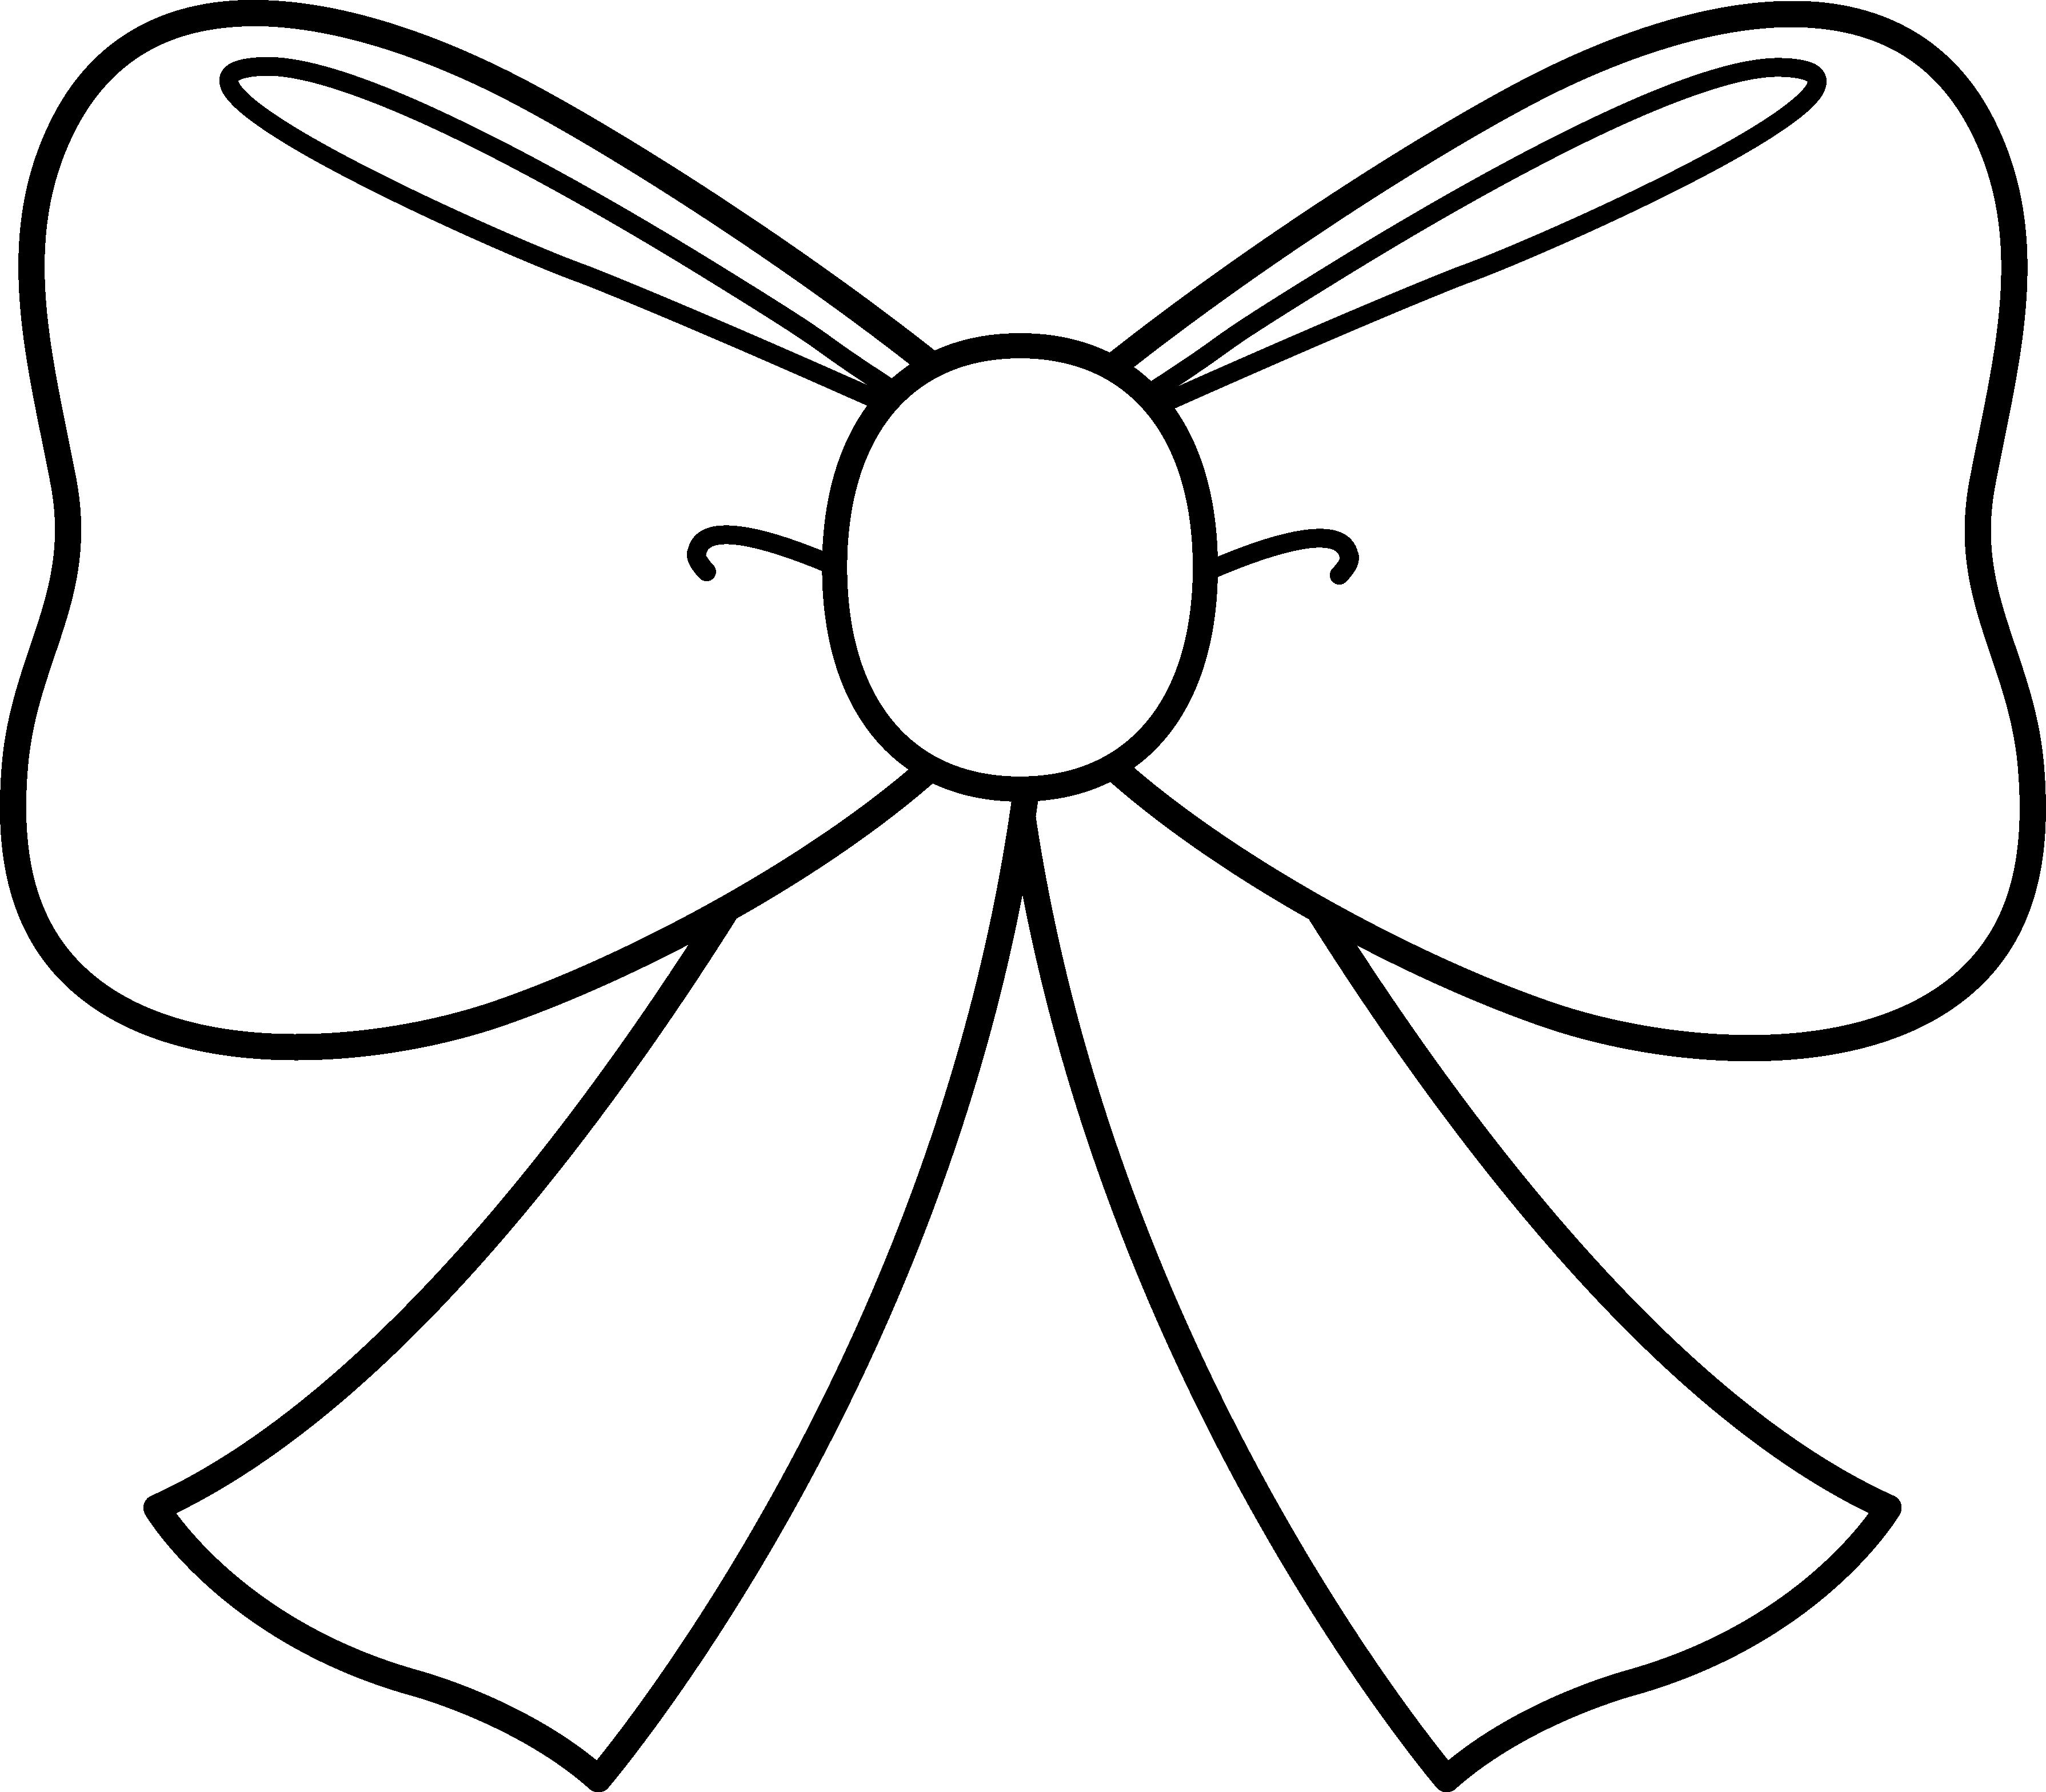 3580x3136 Cute Bow Coloring Page On Bow Coloring Pages